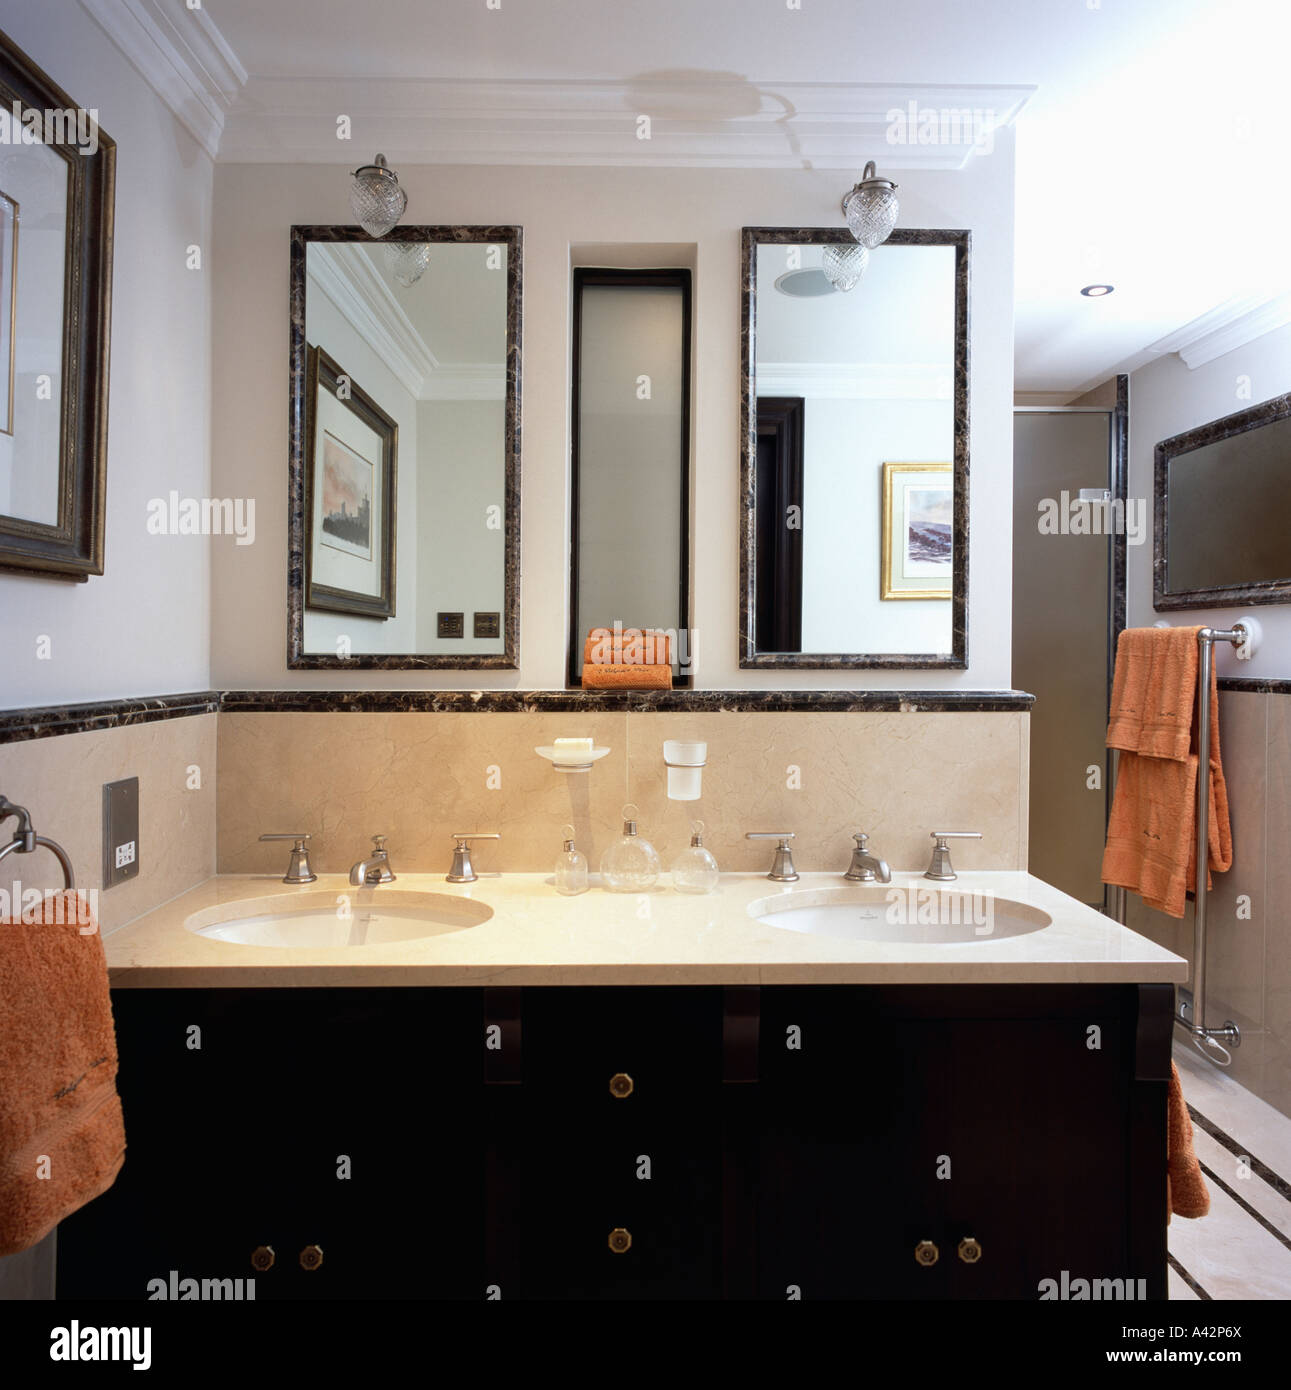 Mirrors above double basins set into vanity unit in modern bathroom - Stock Image